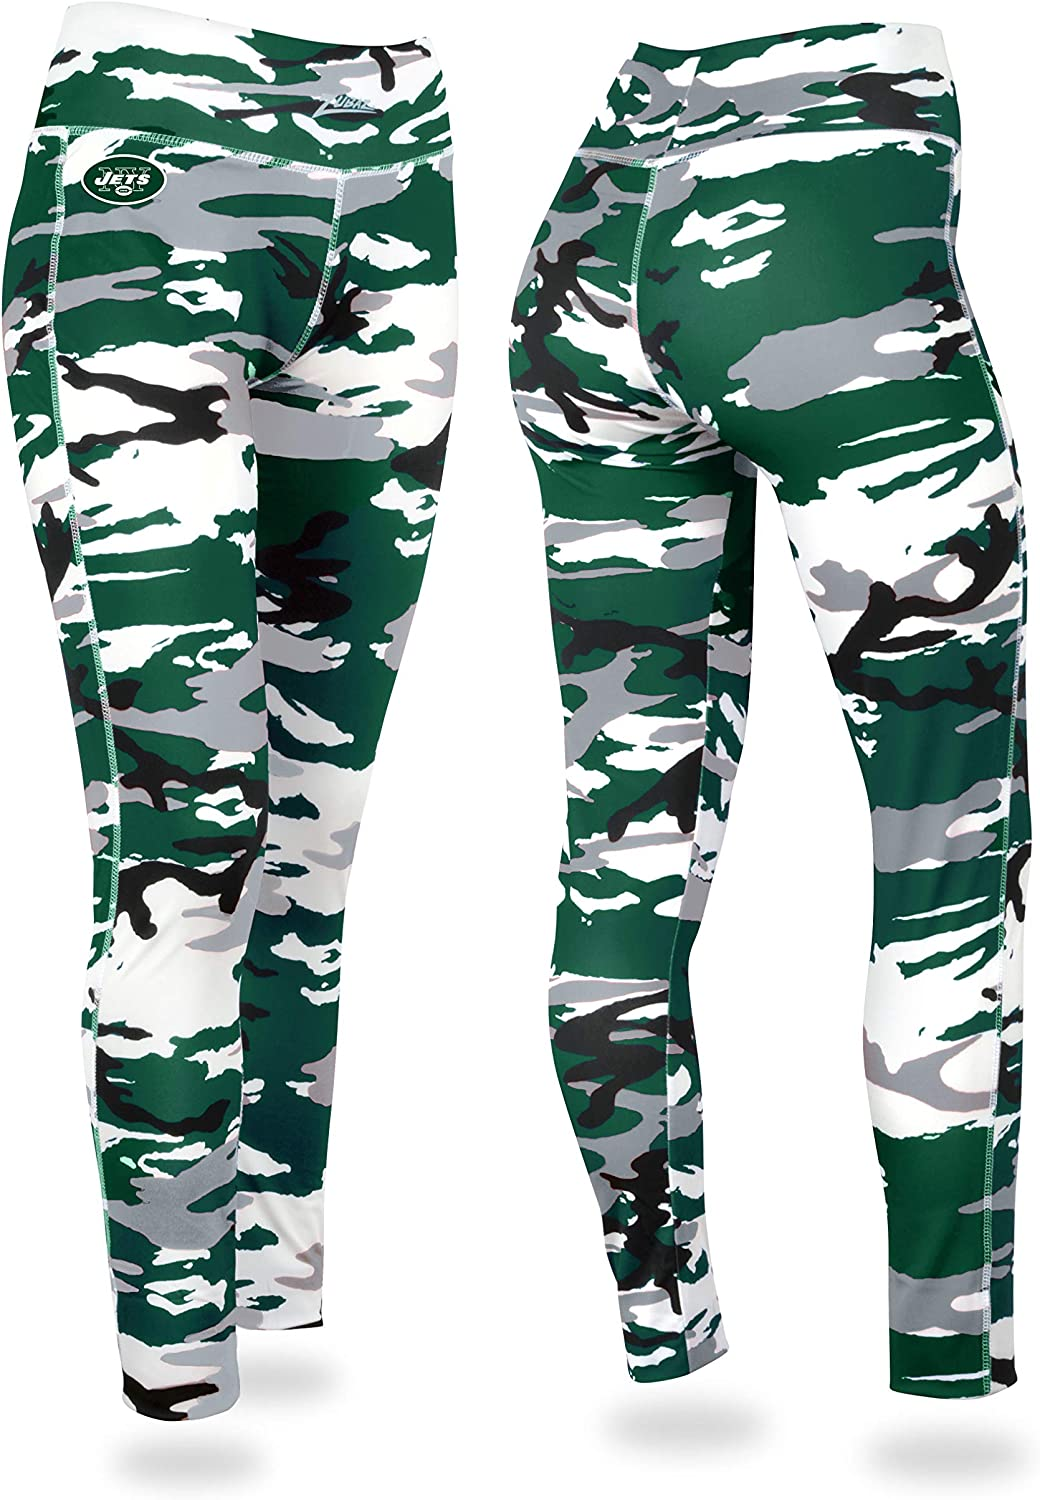 NFL New York Jets Max 44% OFF Women's Directly managed store Green White Camo Large Leggings